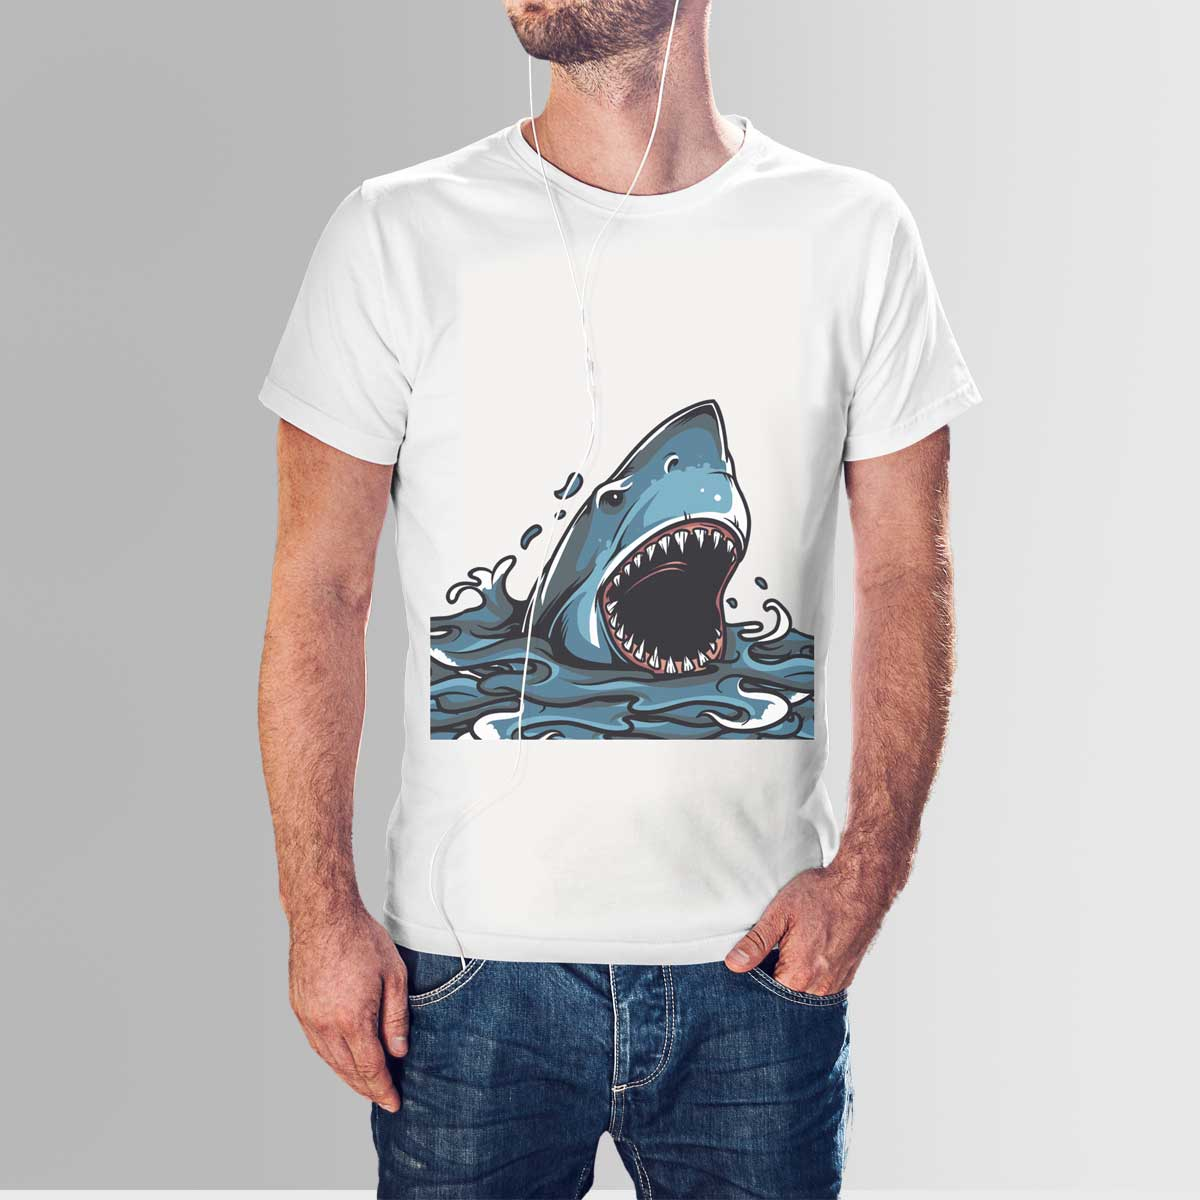 Blue whale t shirt design your own for Whale emblem on shirt